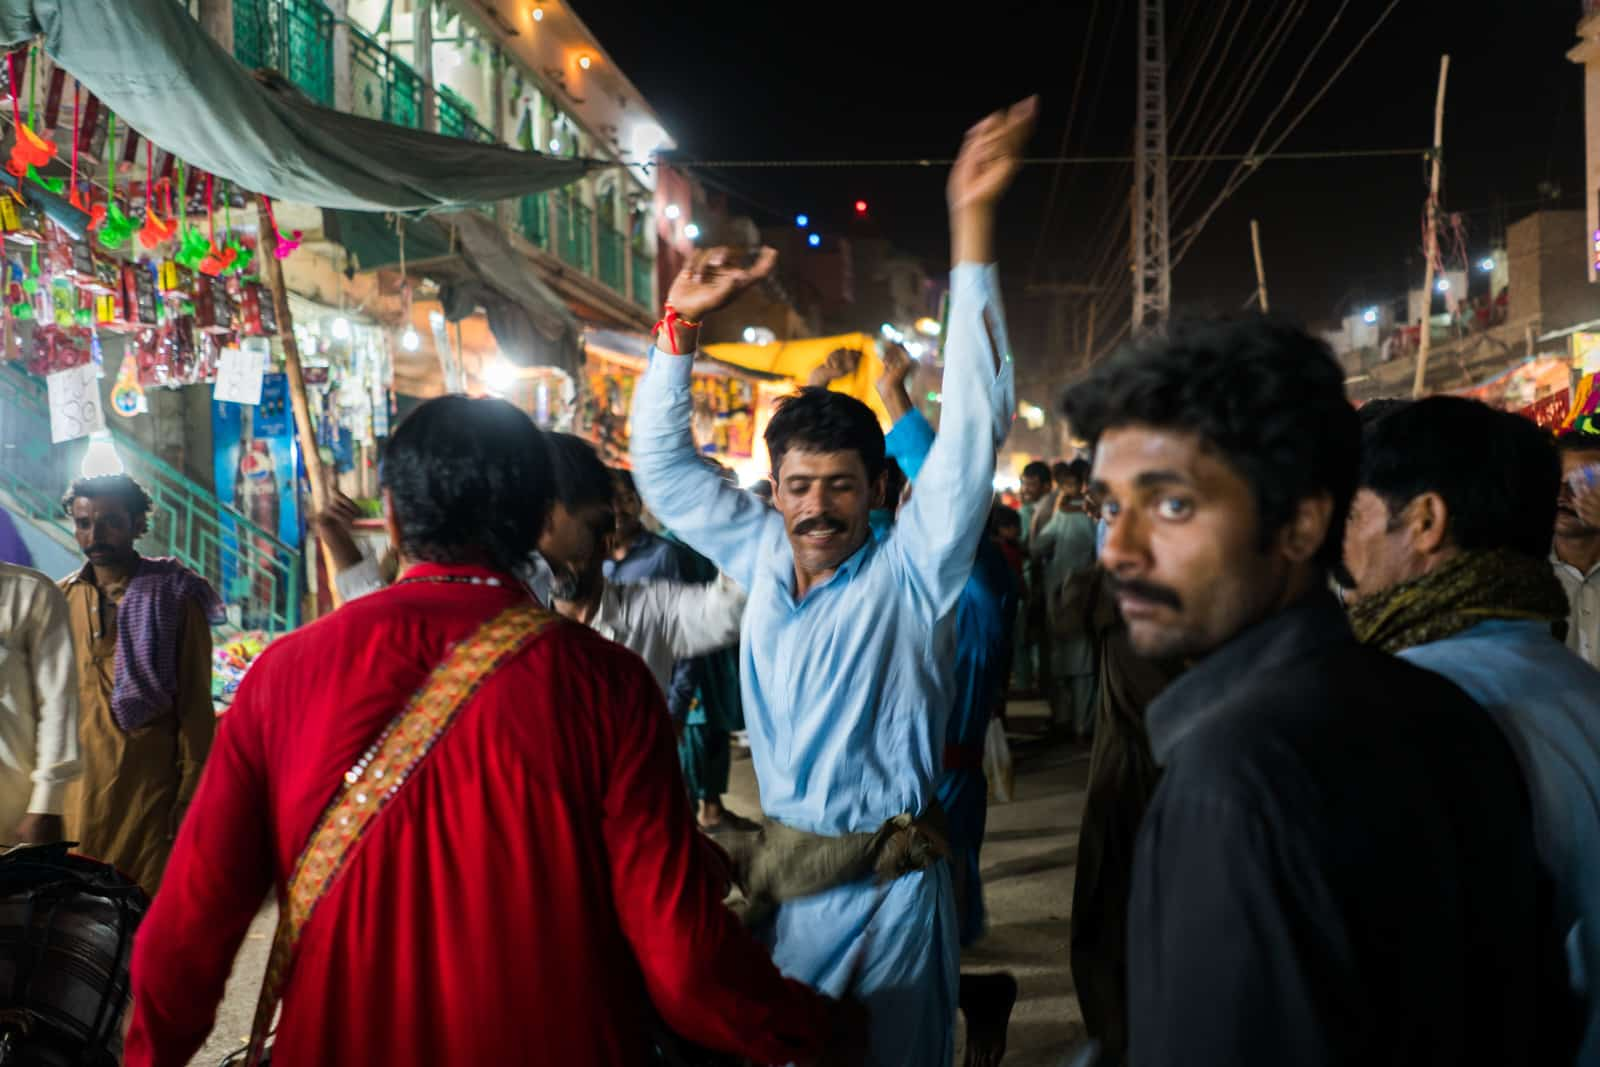 The Urs of Lal Shahbaz Qalandar in Sehwan, Pakistan - Man dancing on the streets of Sehwan at night - Lost With Purpose travel blog